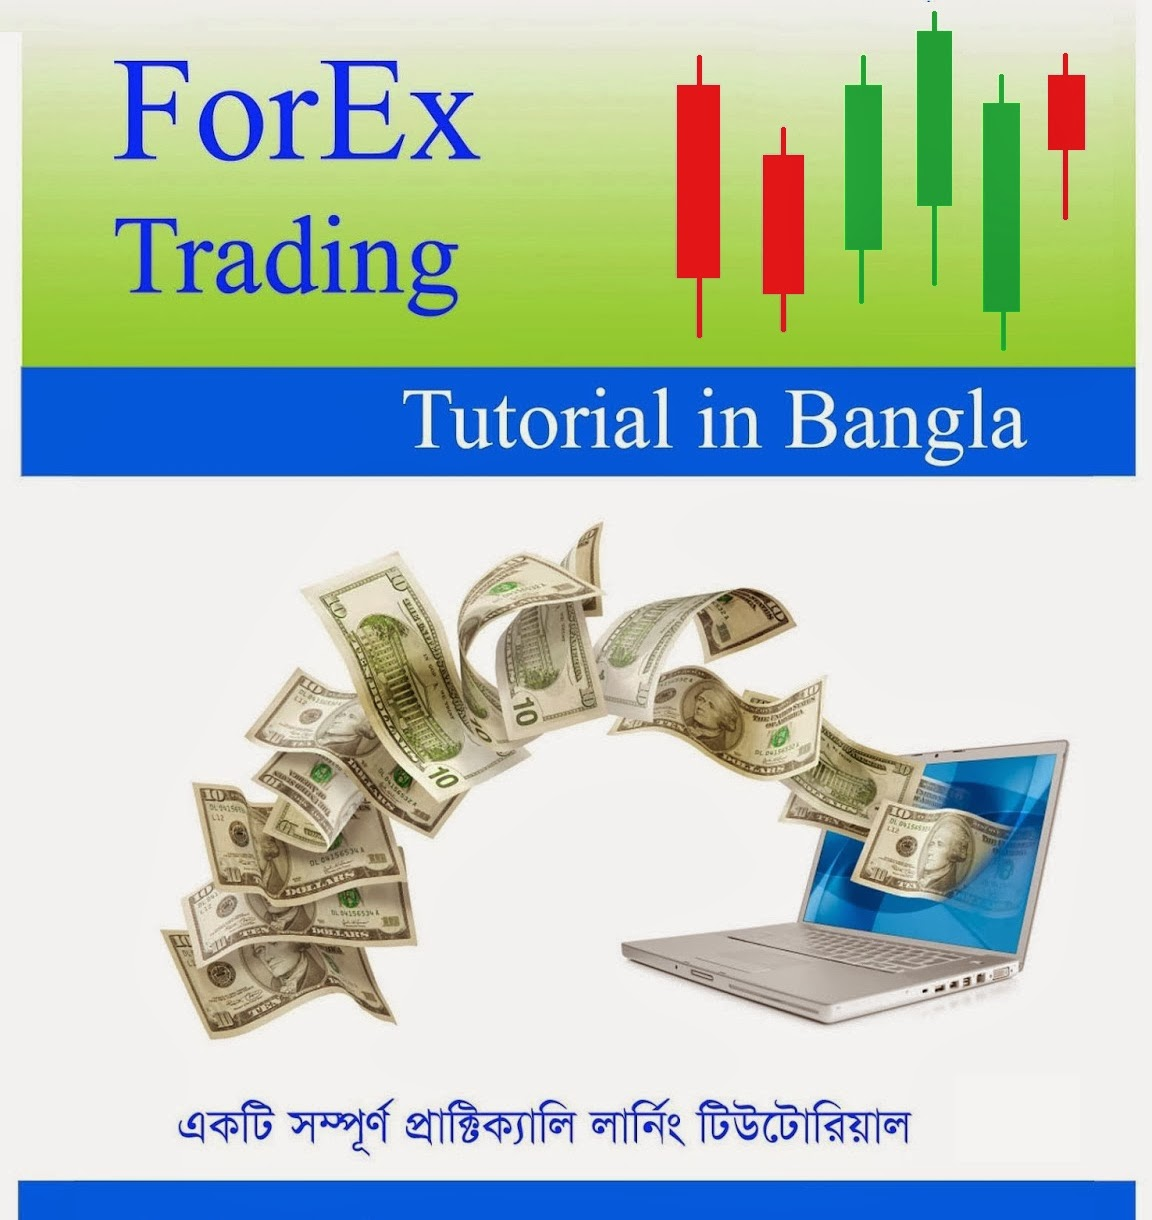 Forex dealers in kolkata